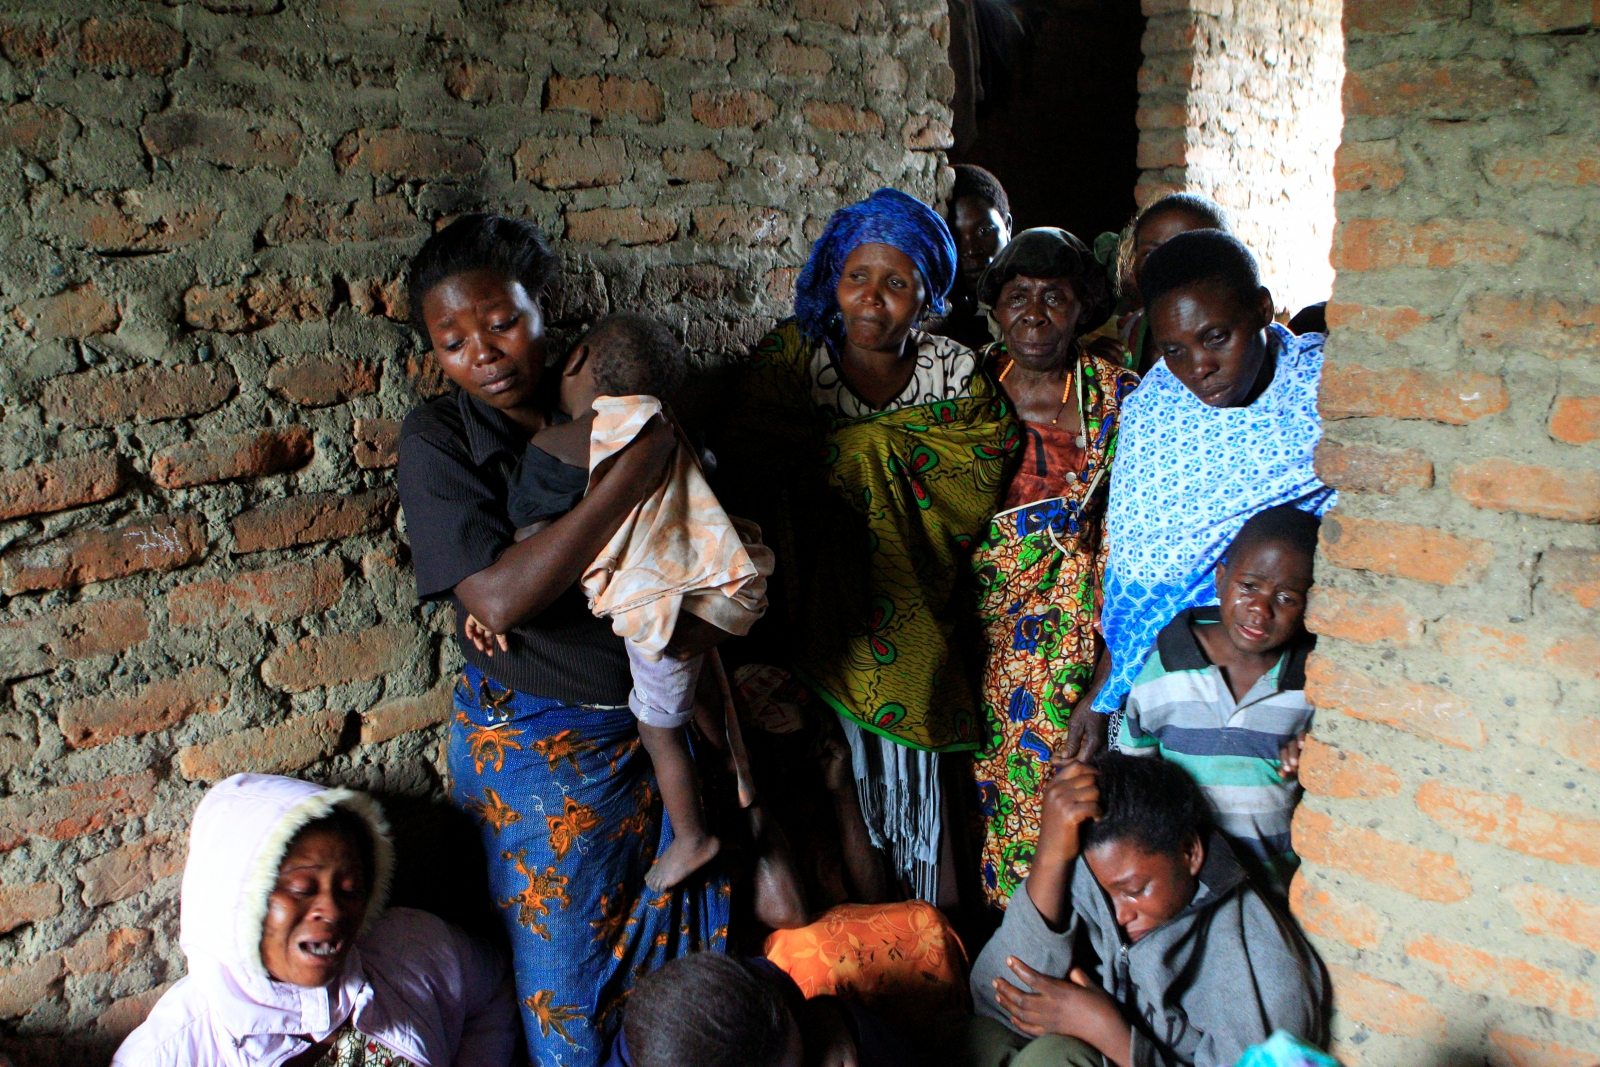 Ugandan military and police killed 15 children during offensive in Kasese town claims HRW